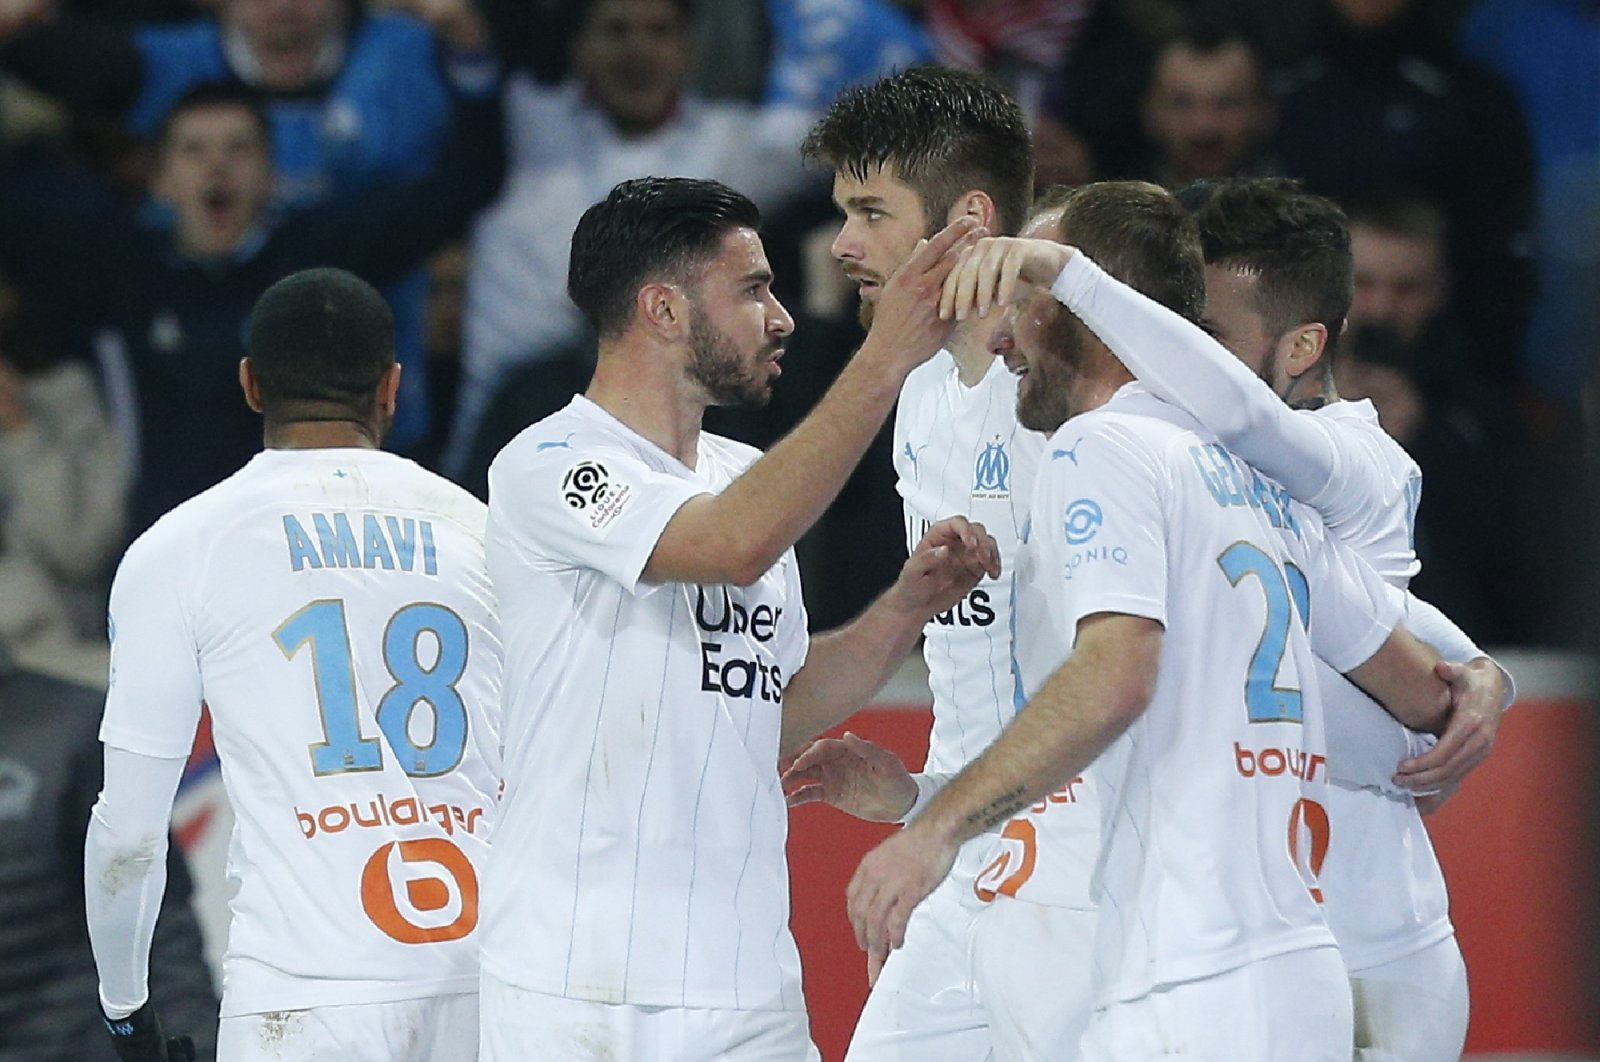 Marseille players celebrate a goal during a Ligue 1 match against Lille in Villeneuve d'Ascq, northern France, Feb. 16, 2020. (AP Photo)